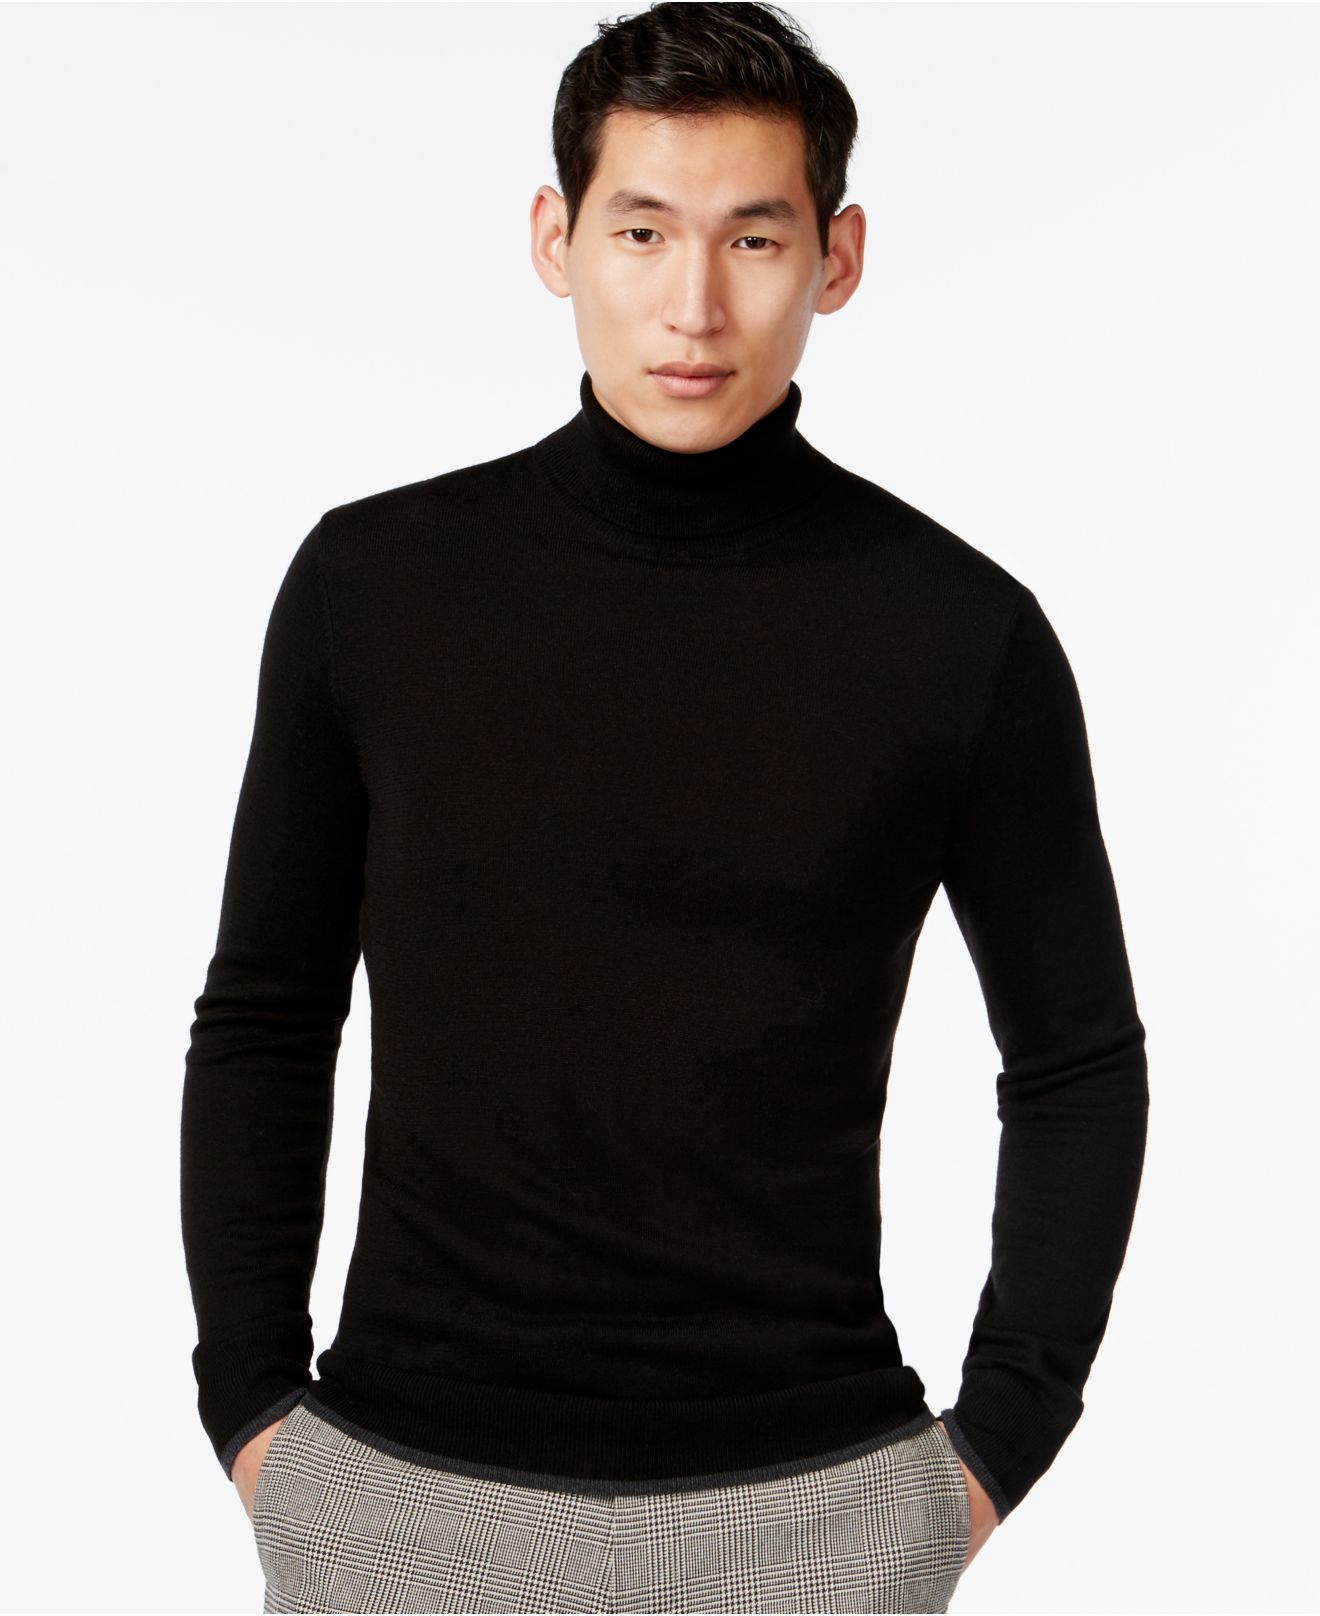 Men's Sweaters For Every Occasion. Sweater time is upon us again! Pullovers, quarter-zip and half-zip styles, sweater hoodies and more we've got a great selection of men's sweaters that expand your wardrobe effortlessly.